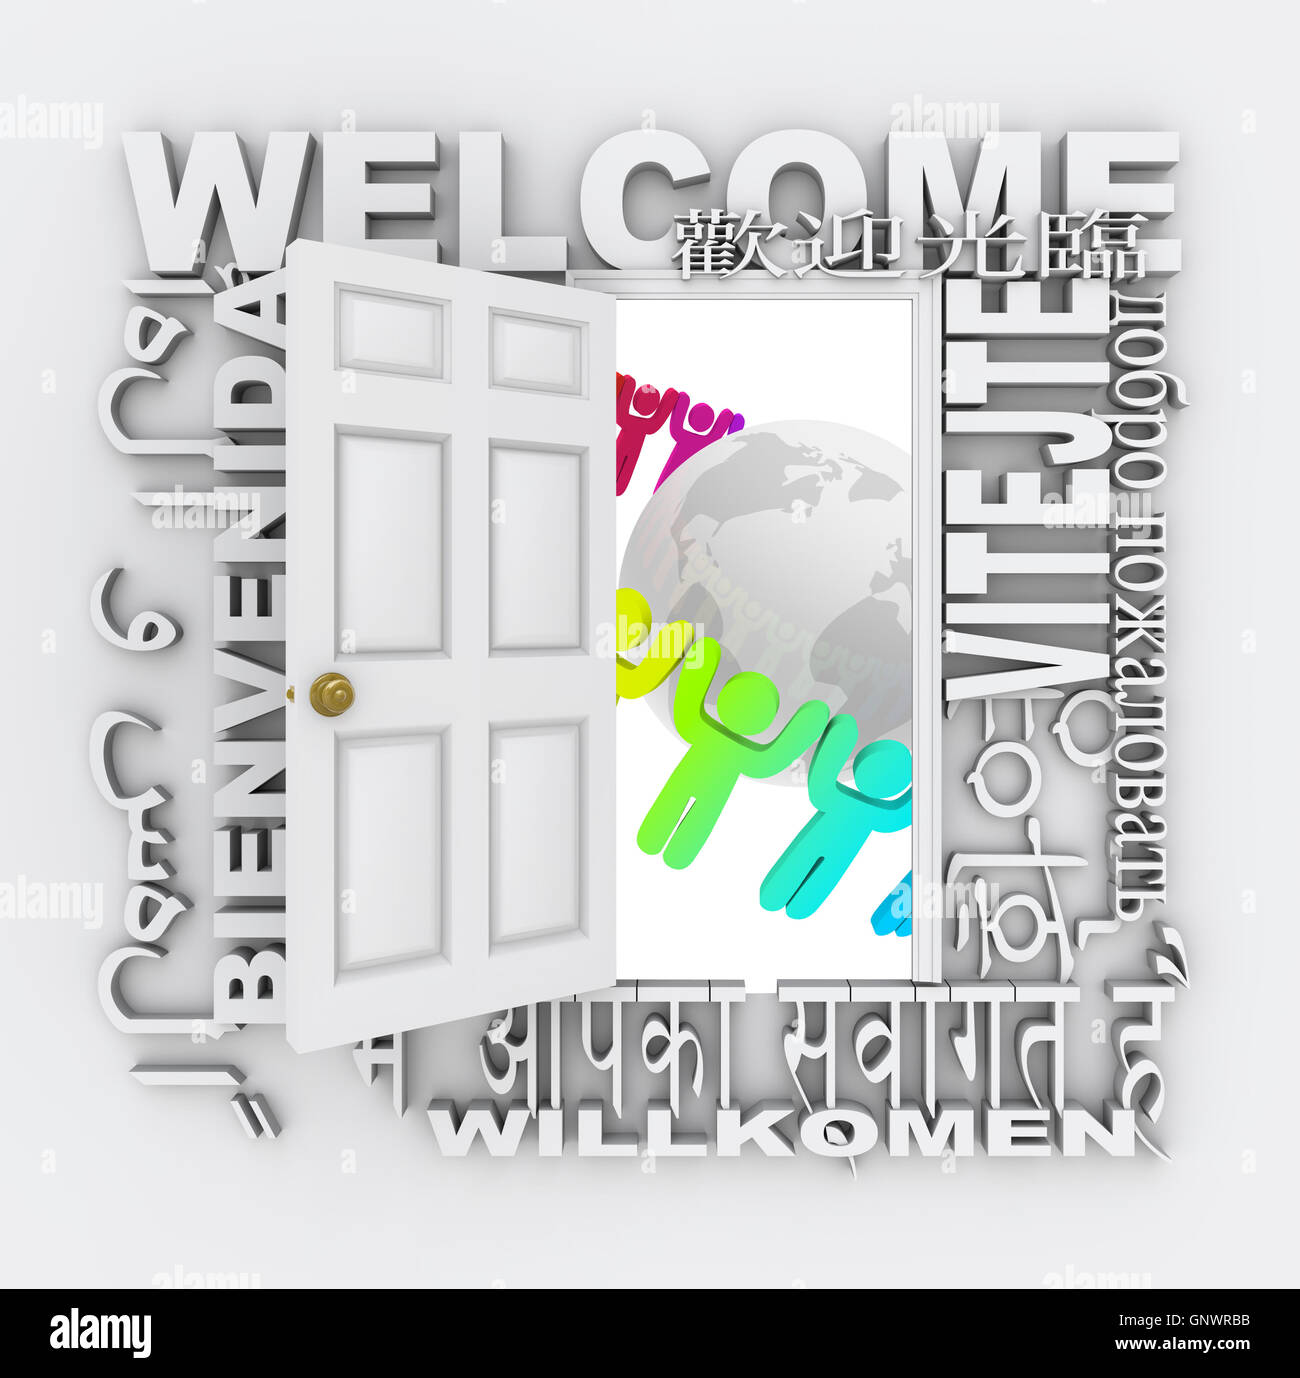 Greeting greetings stock photos greeting greetings stock images welcome word door greeting people around world stock image m4hsunfo